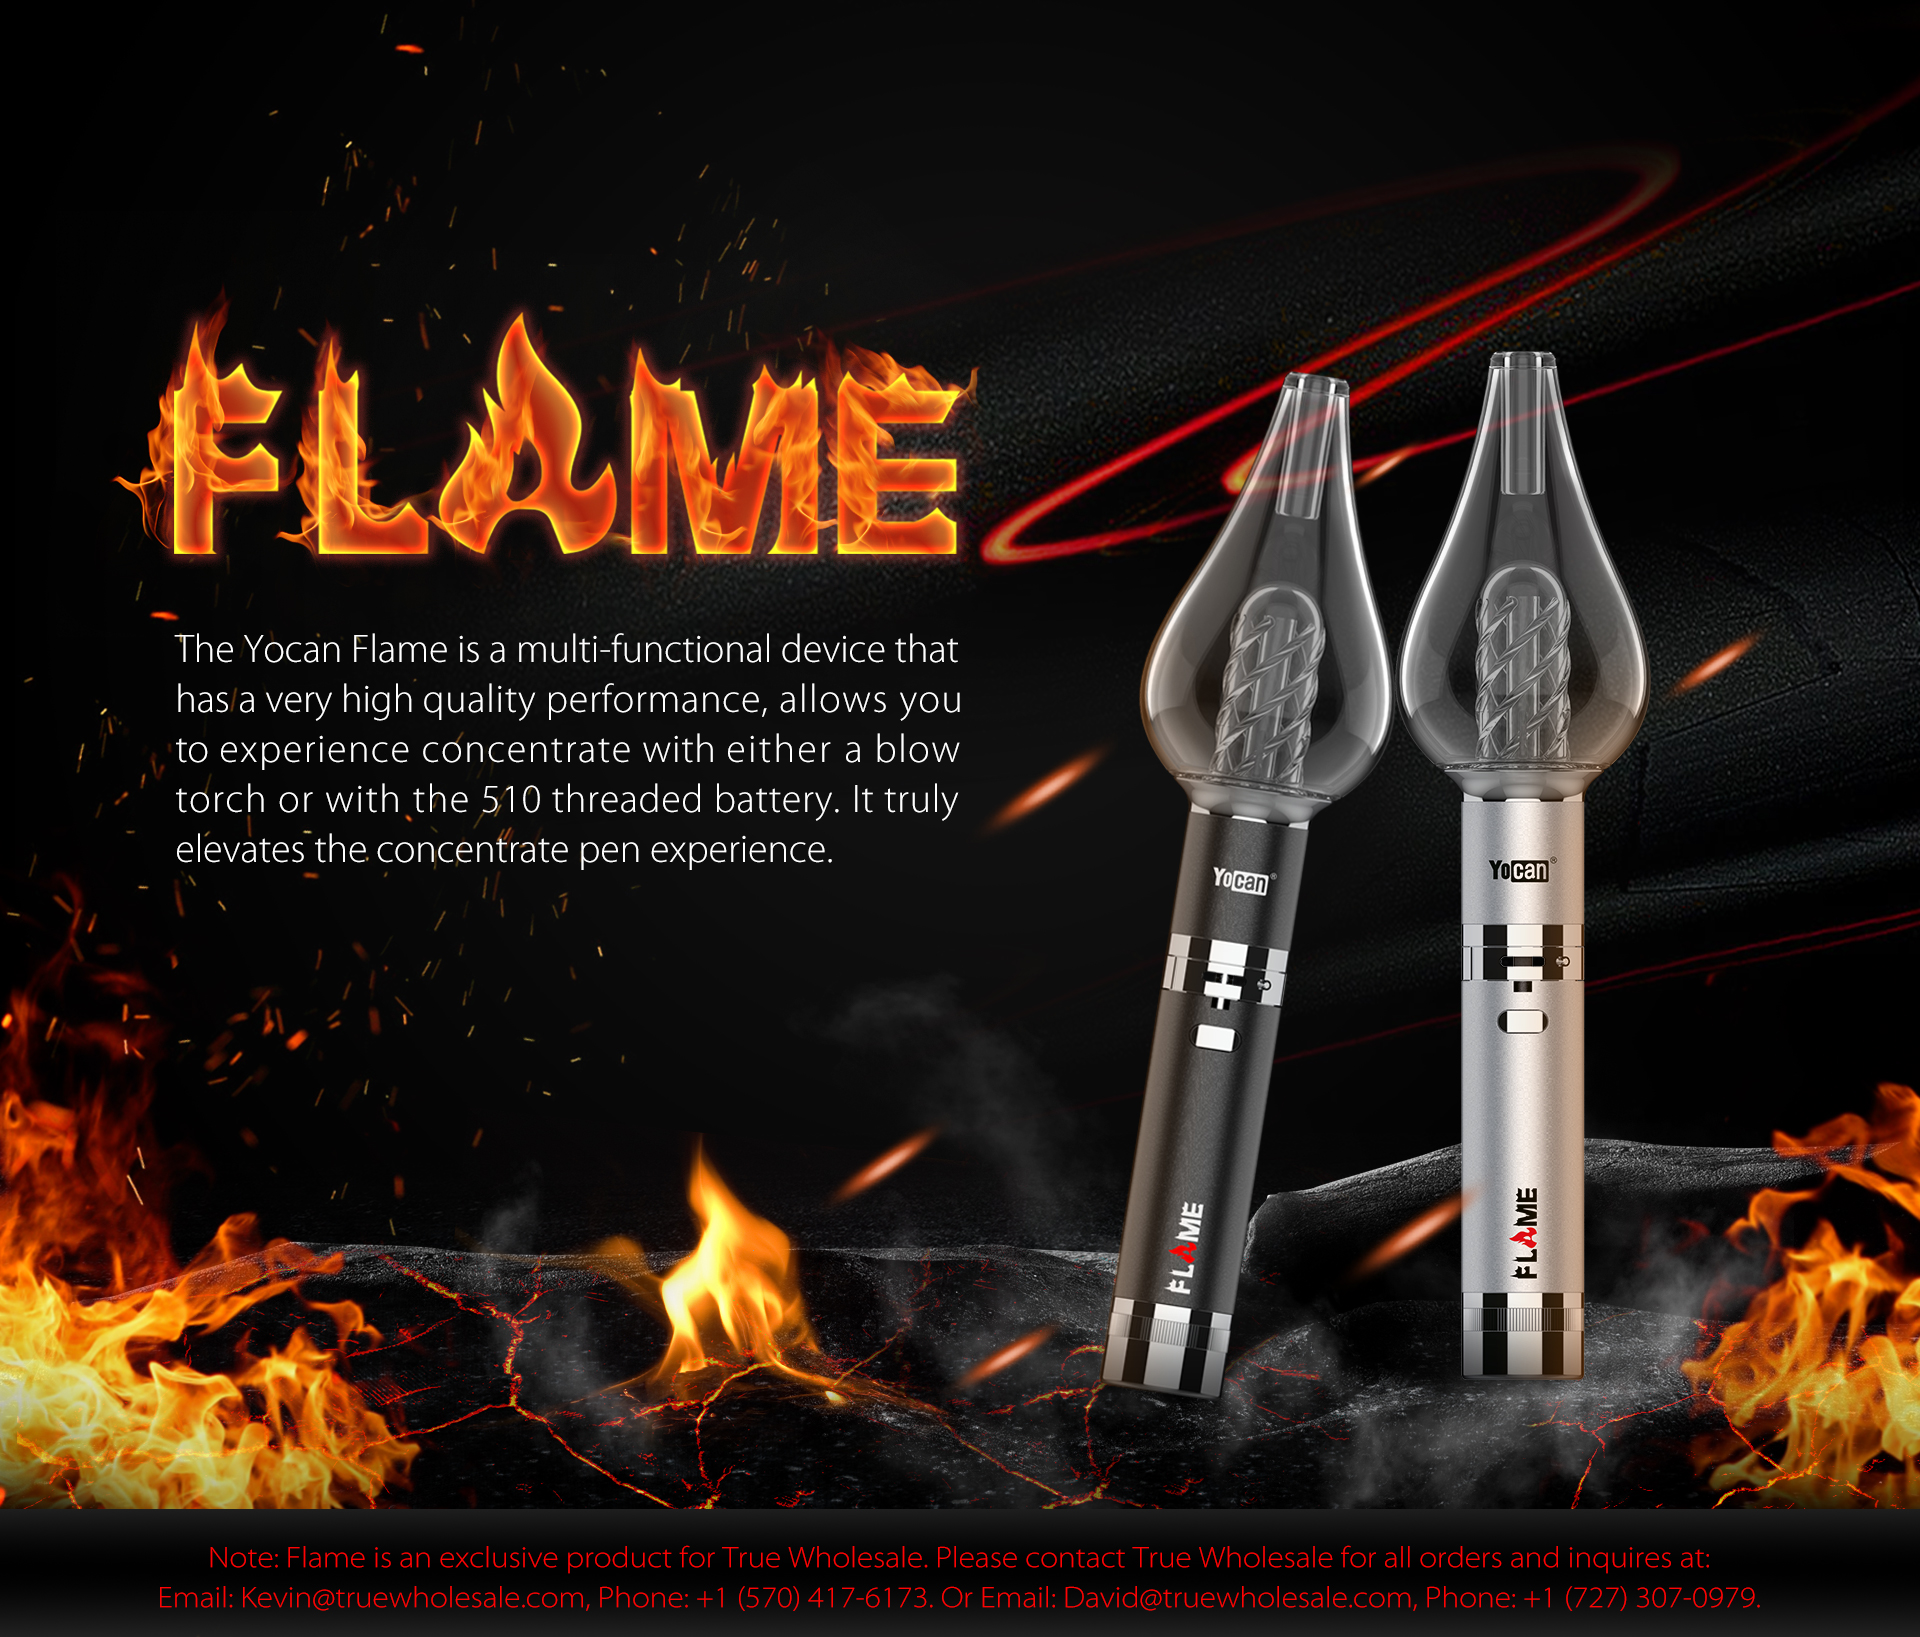 The Yocan Flame is a multi-functional device